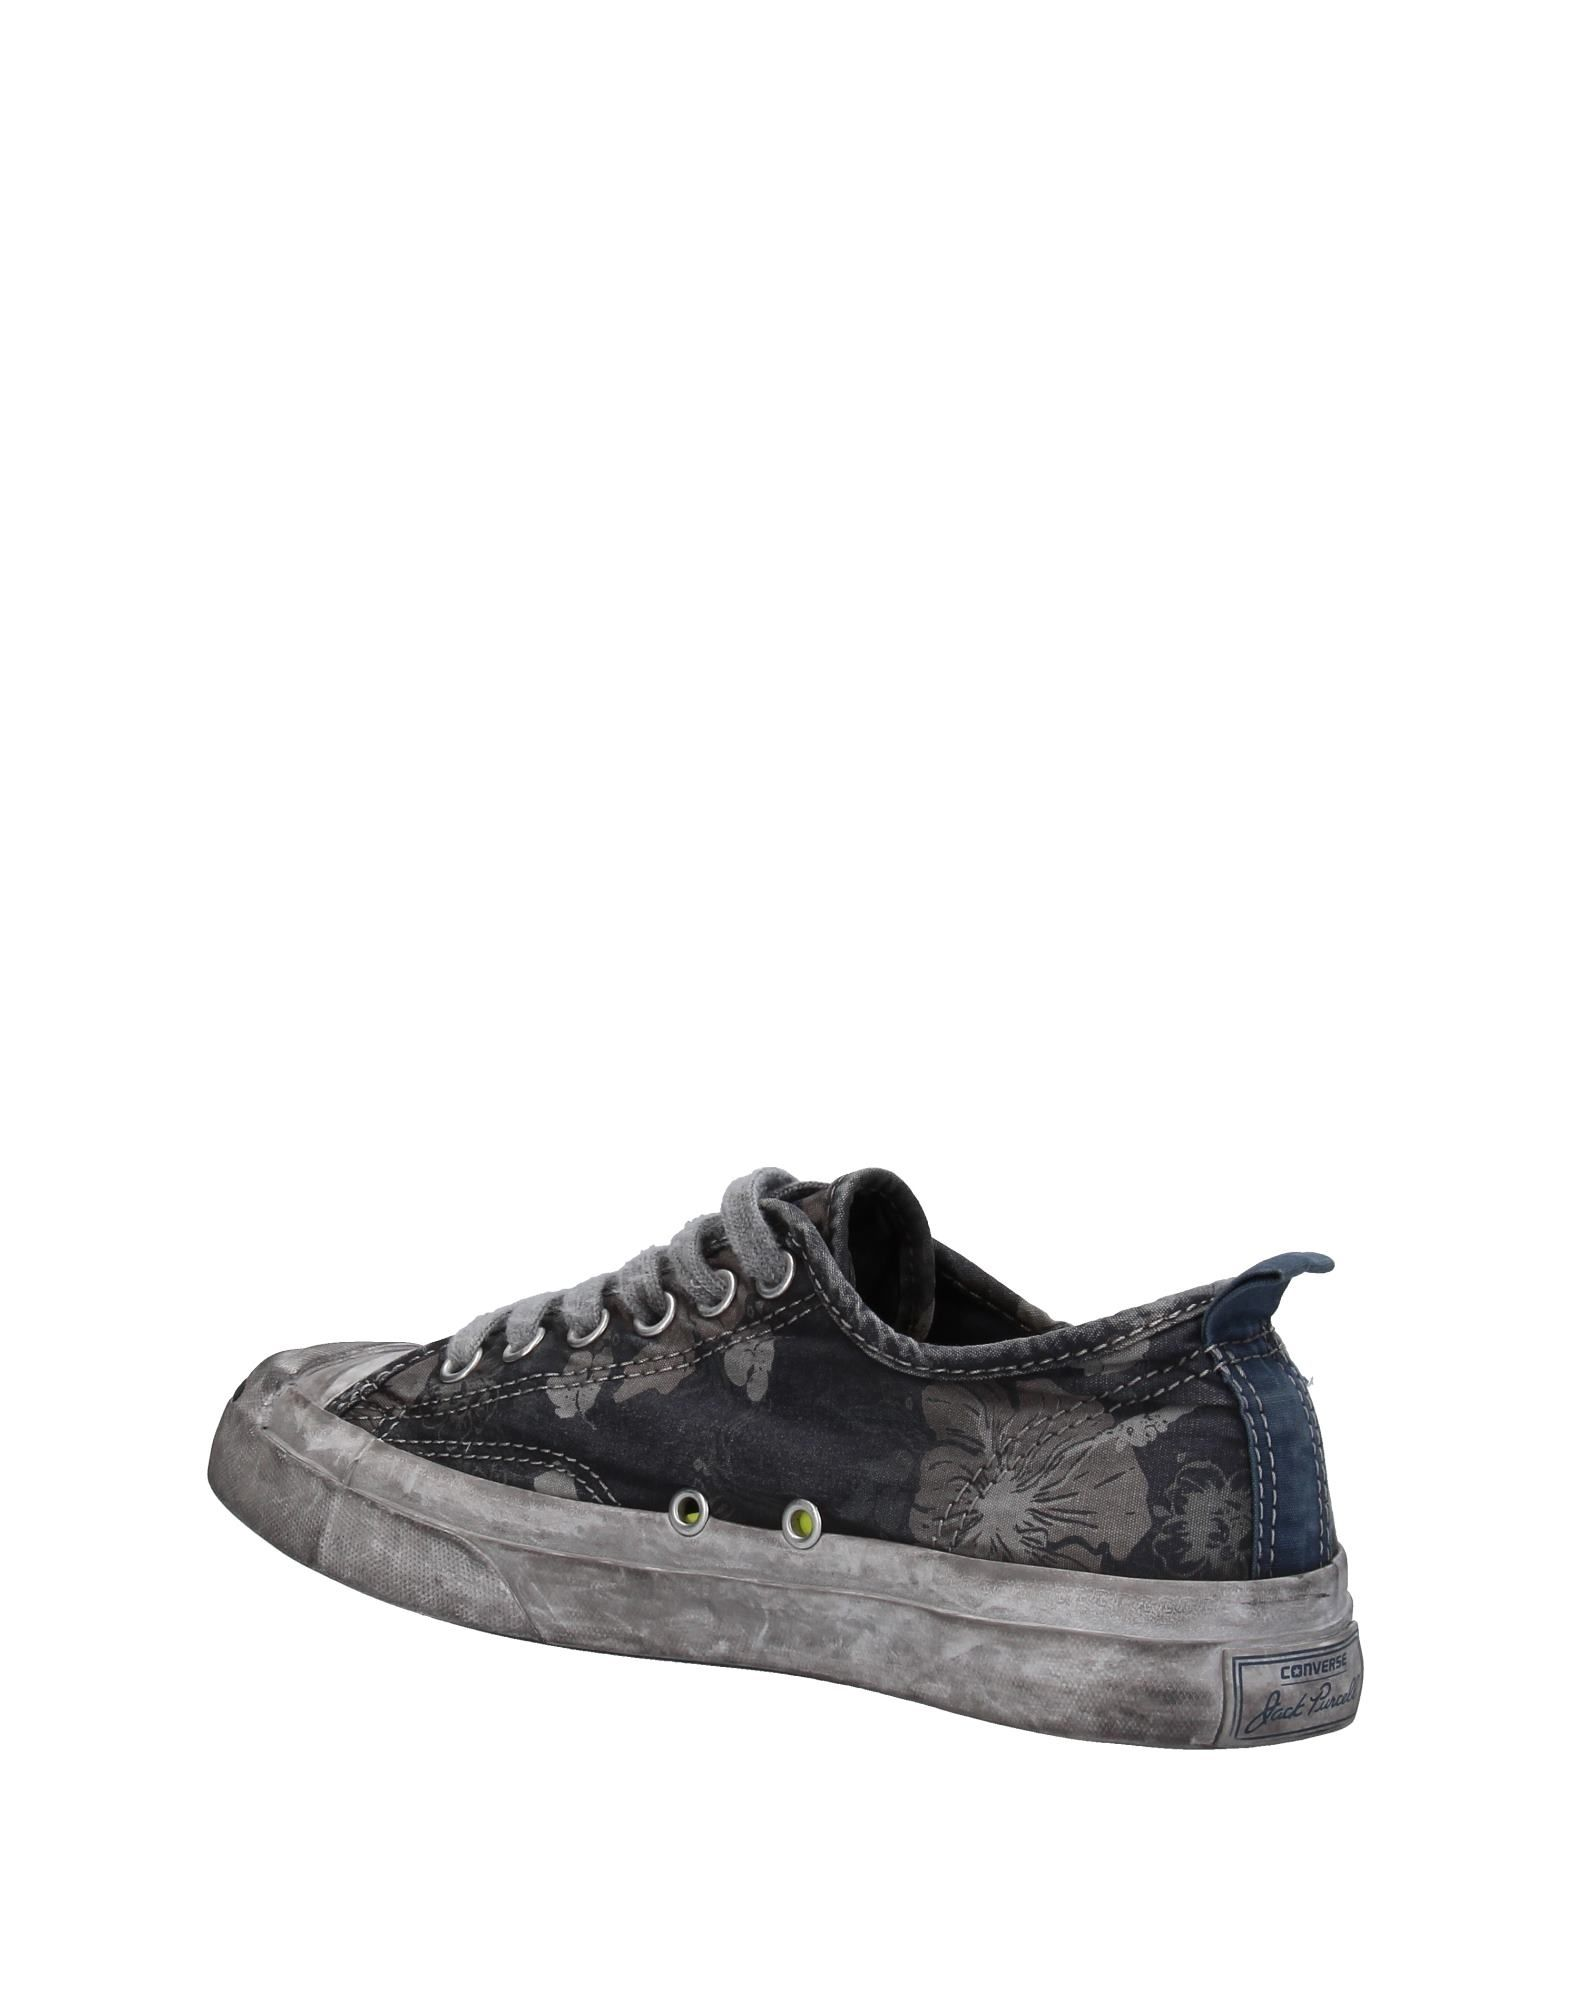 Sneakers Converse Jack Purcell Femme - Sneakers Converse Jack Purcell sur